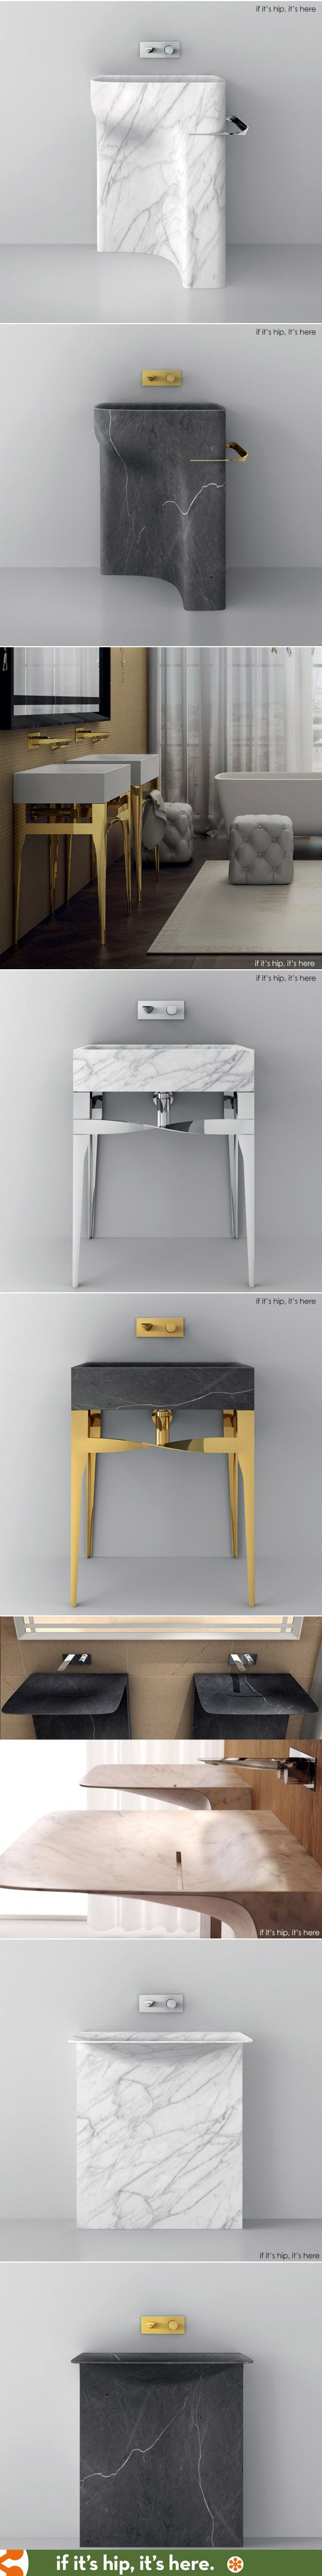 The Accademia Collection of washbasins from Teuco mix marble, metal and modern design.